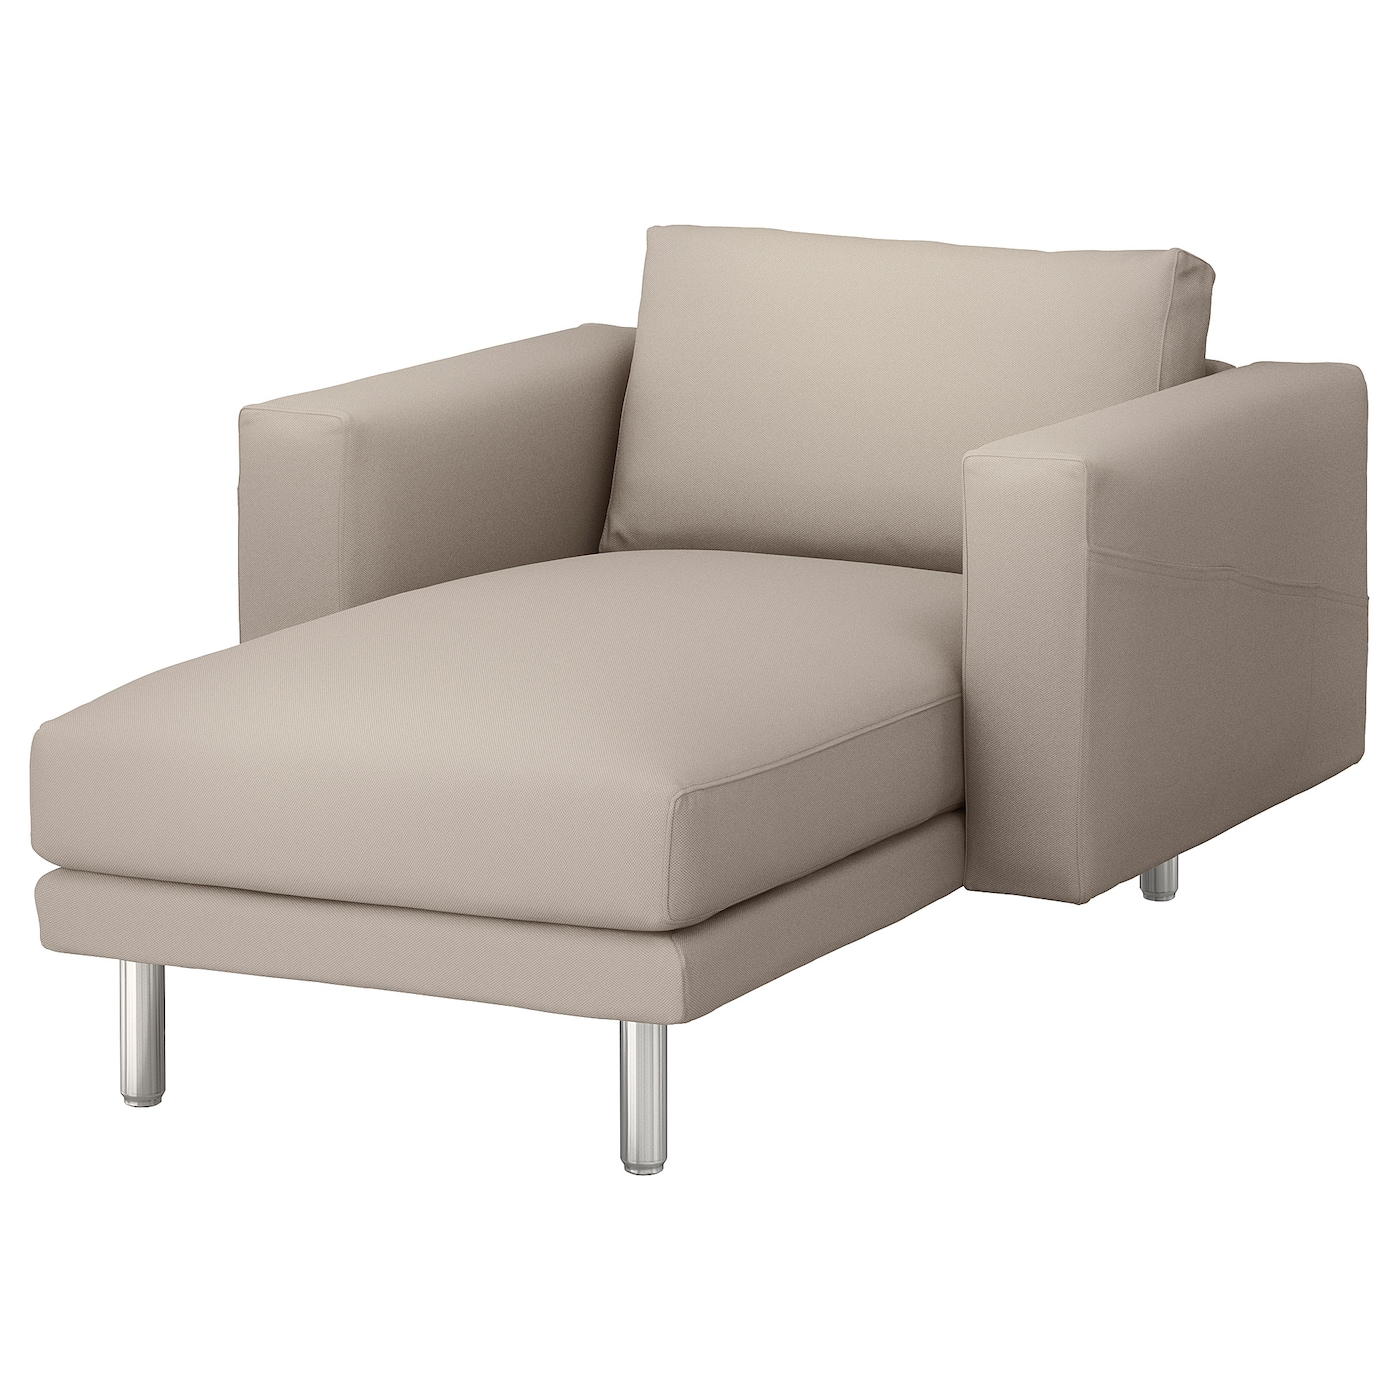 Chaise lounge sofa ikea images for Chaise longue jardin metal